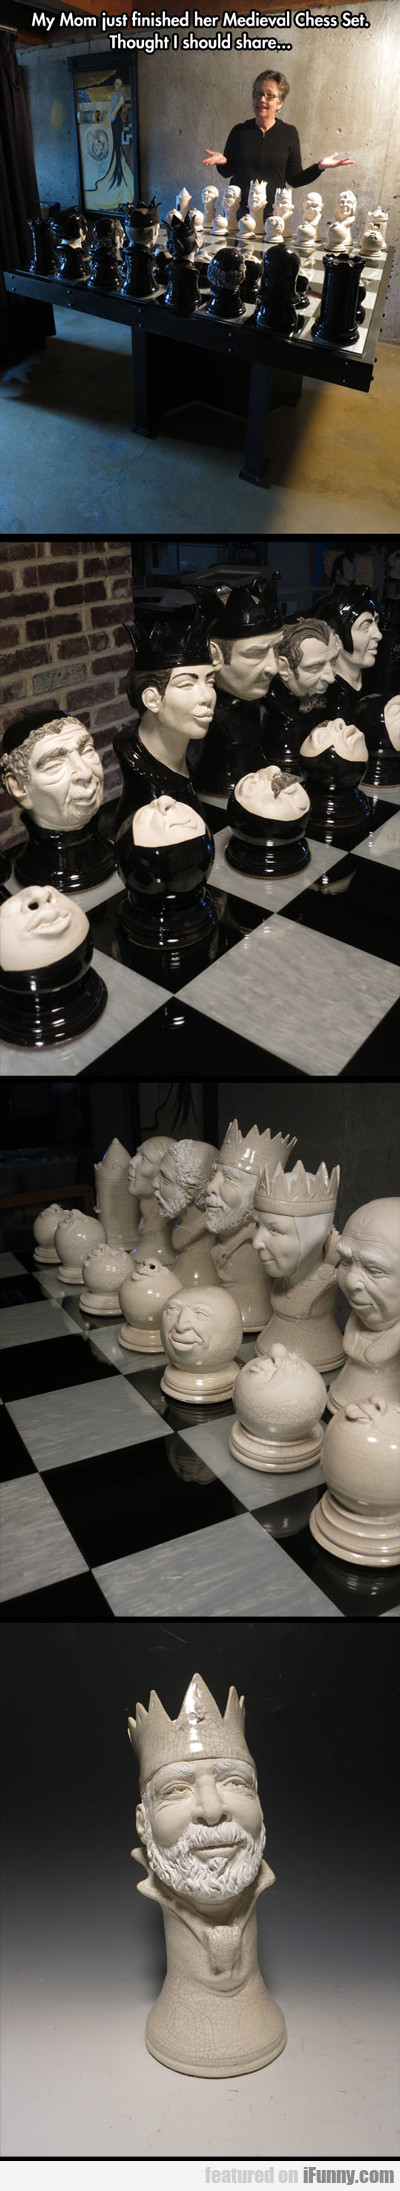 My Mom Just Finished Her Medieval Chess Set...